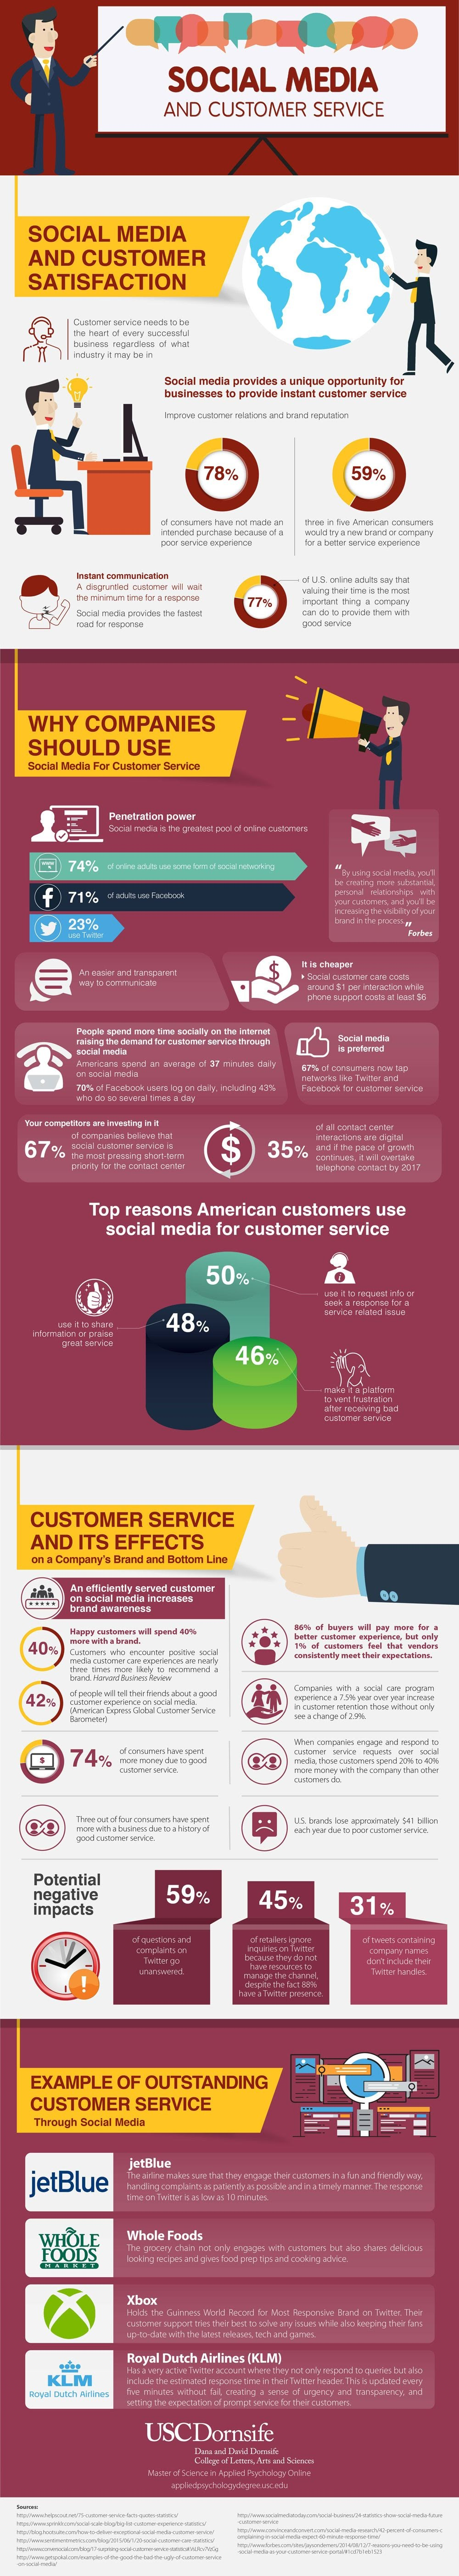 Social Media and Customer Service [Infographic] | Social Media Today